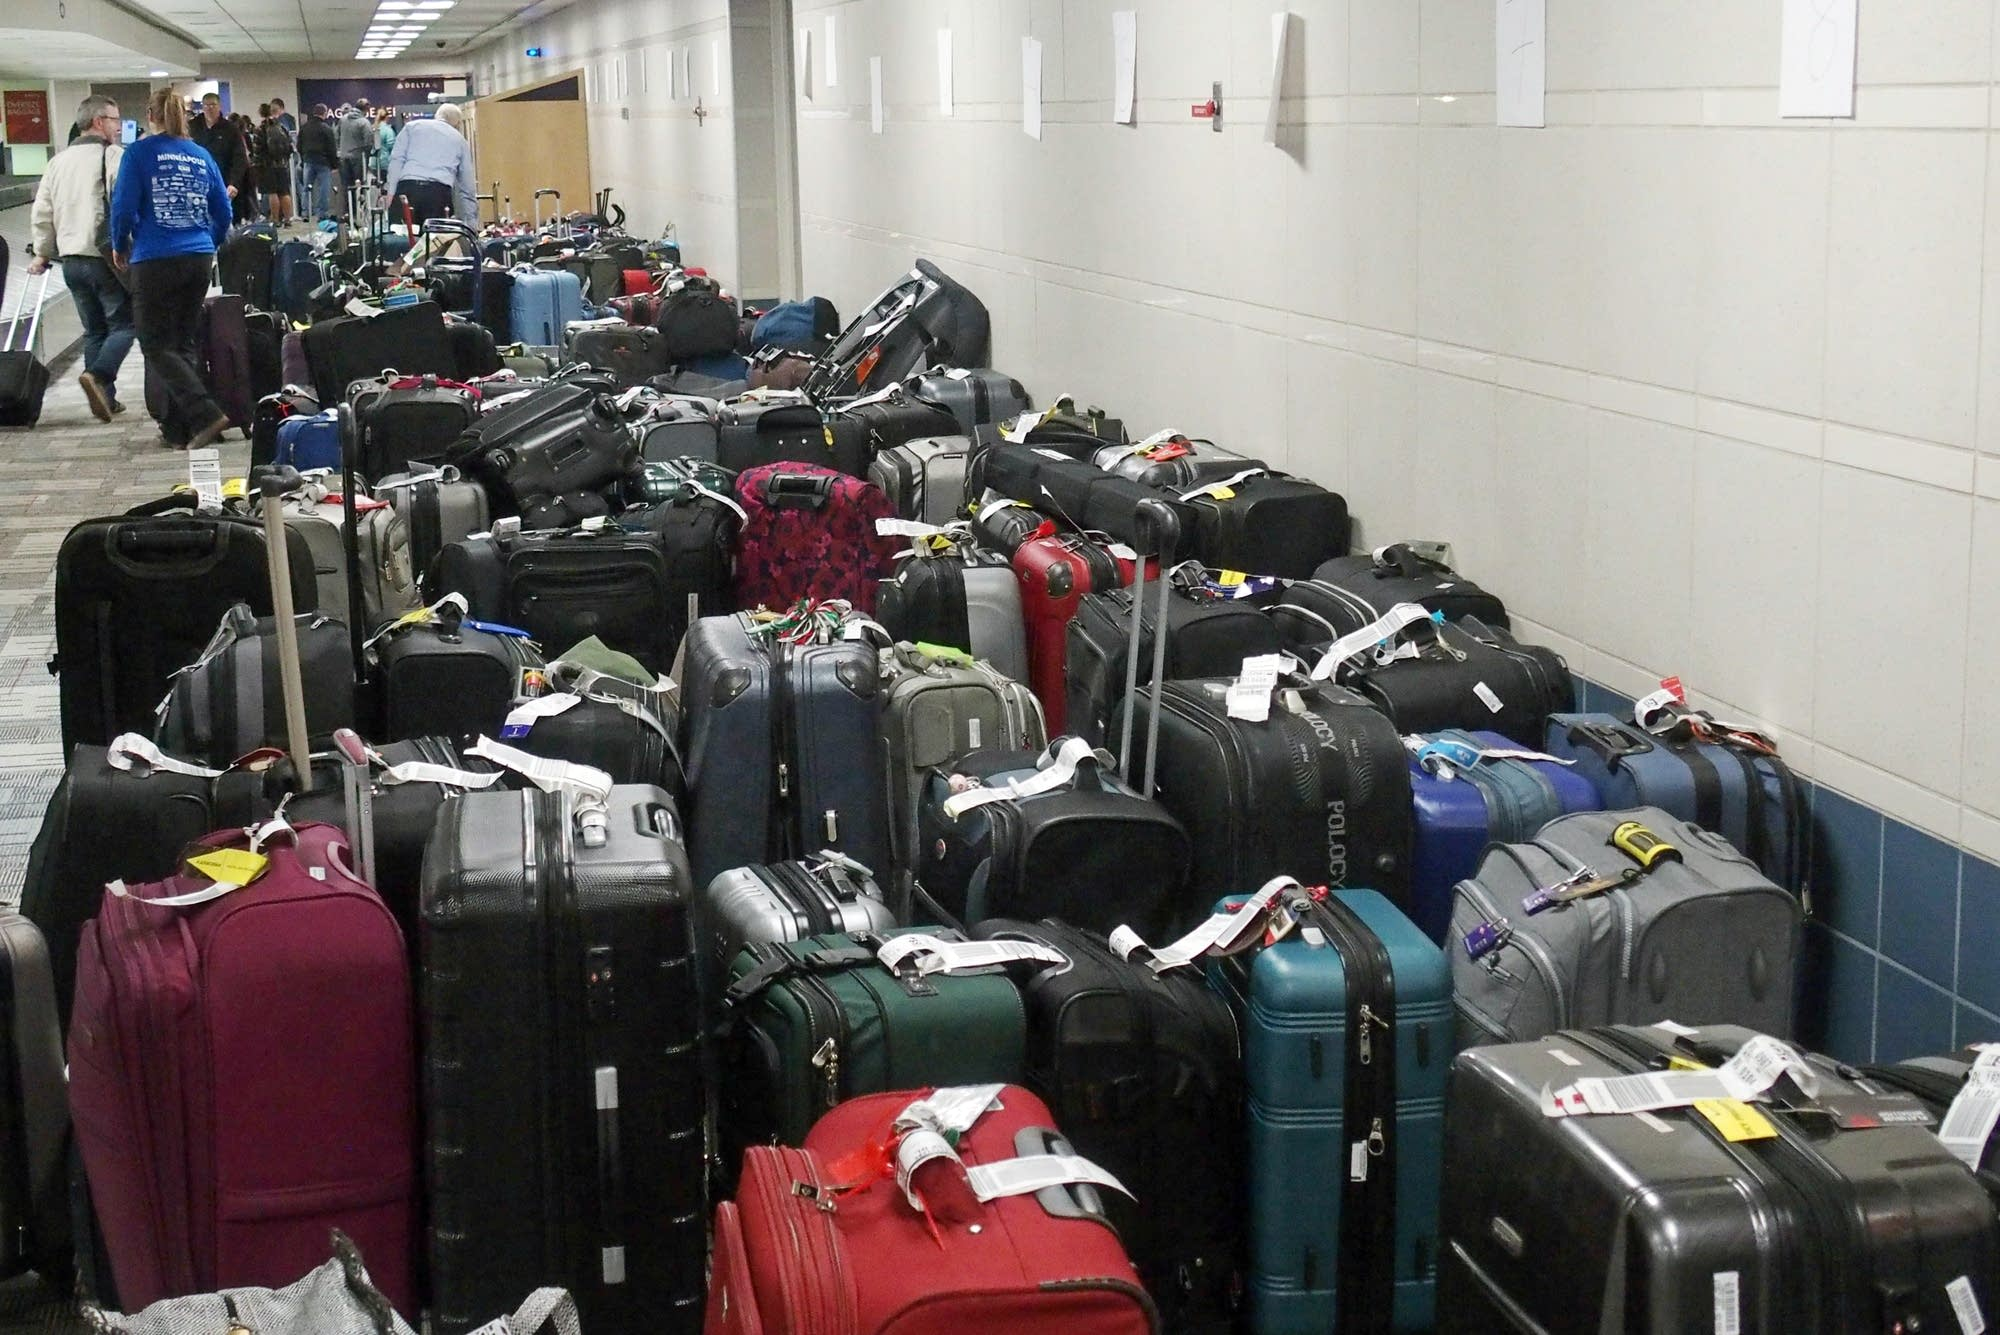 Baggage staff at MSP are dealing with hundreds of pieces of luggage.